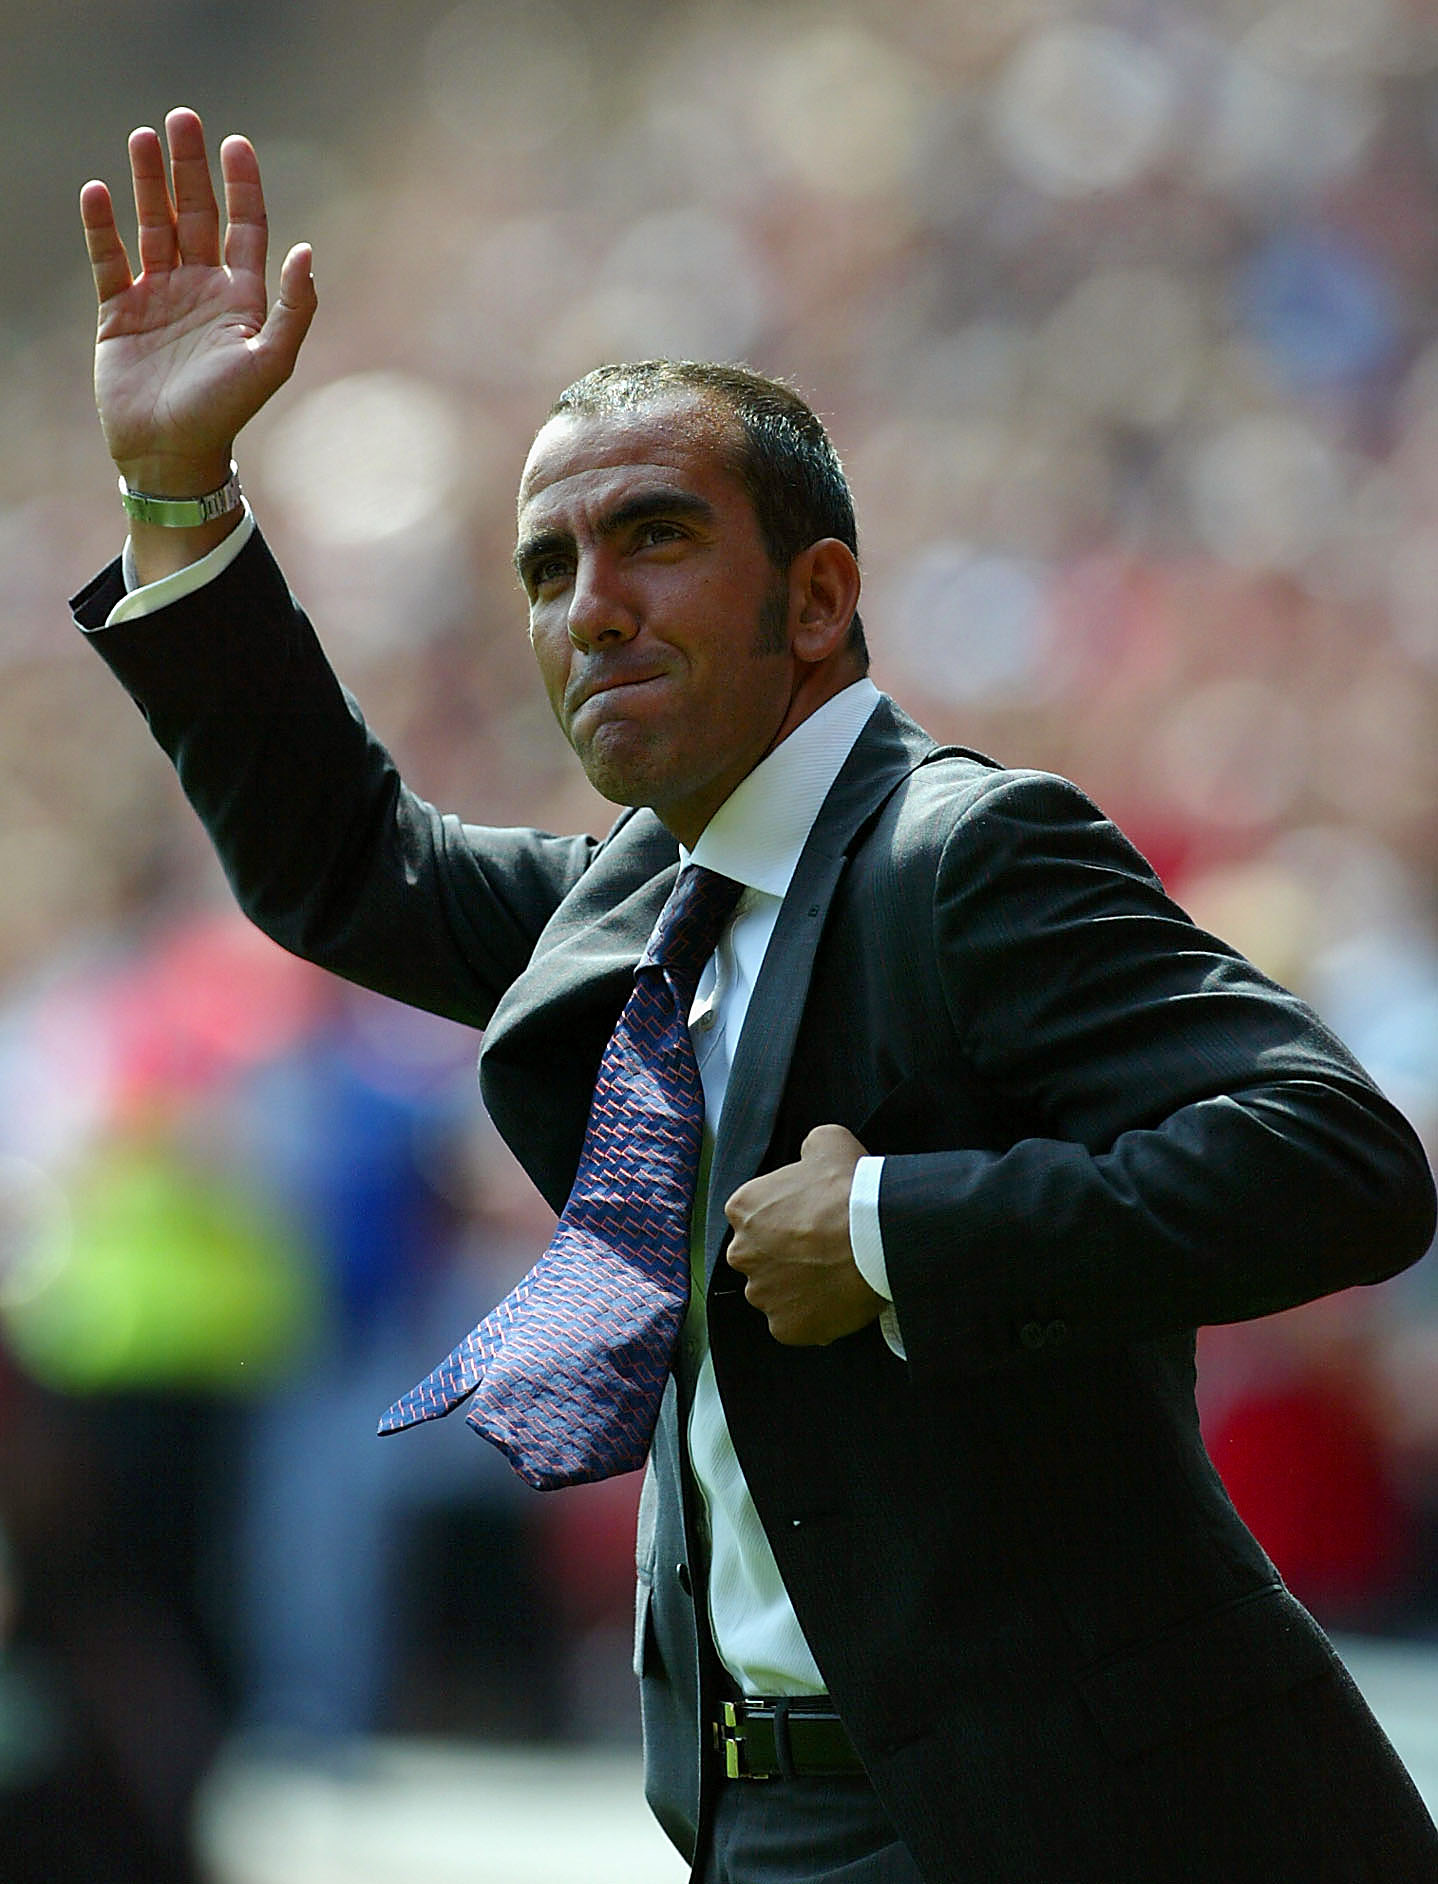 LONDON - AUGUST 17:  Paulo Di Canio of Charlton Athletic waves to the crowd prior to kick-off during the FA Barclaycard Premiership match between Charlton Athletic and Manchester City at The Valley on August 17, 2003 in London. (Photo by Phil Cole/Getty I